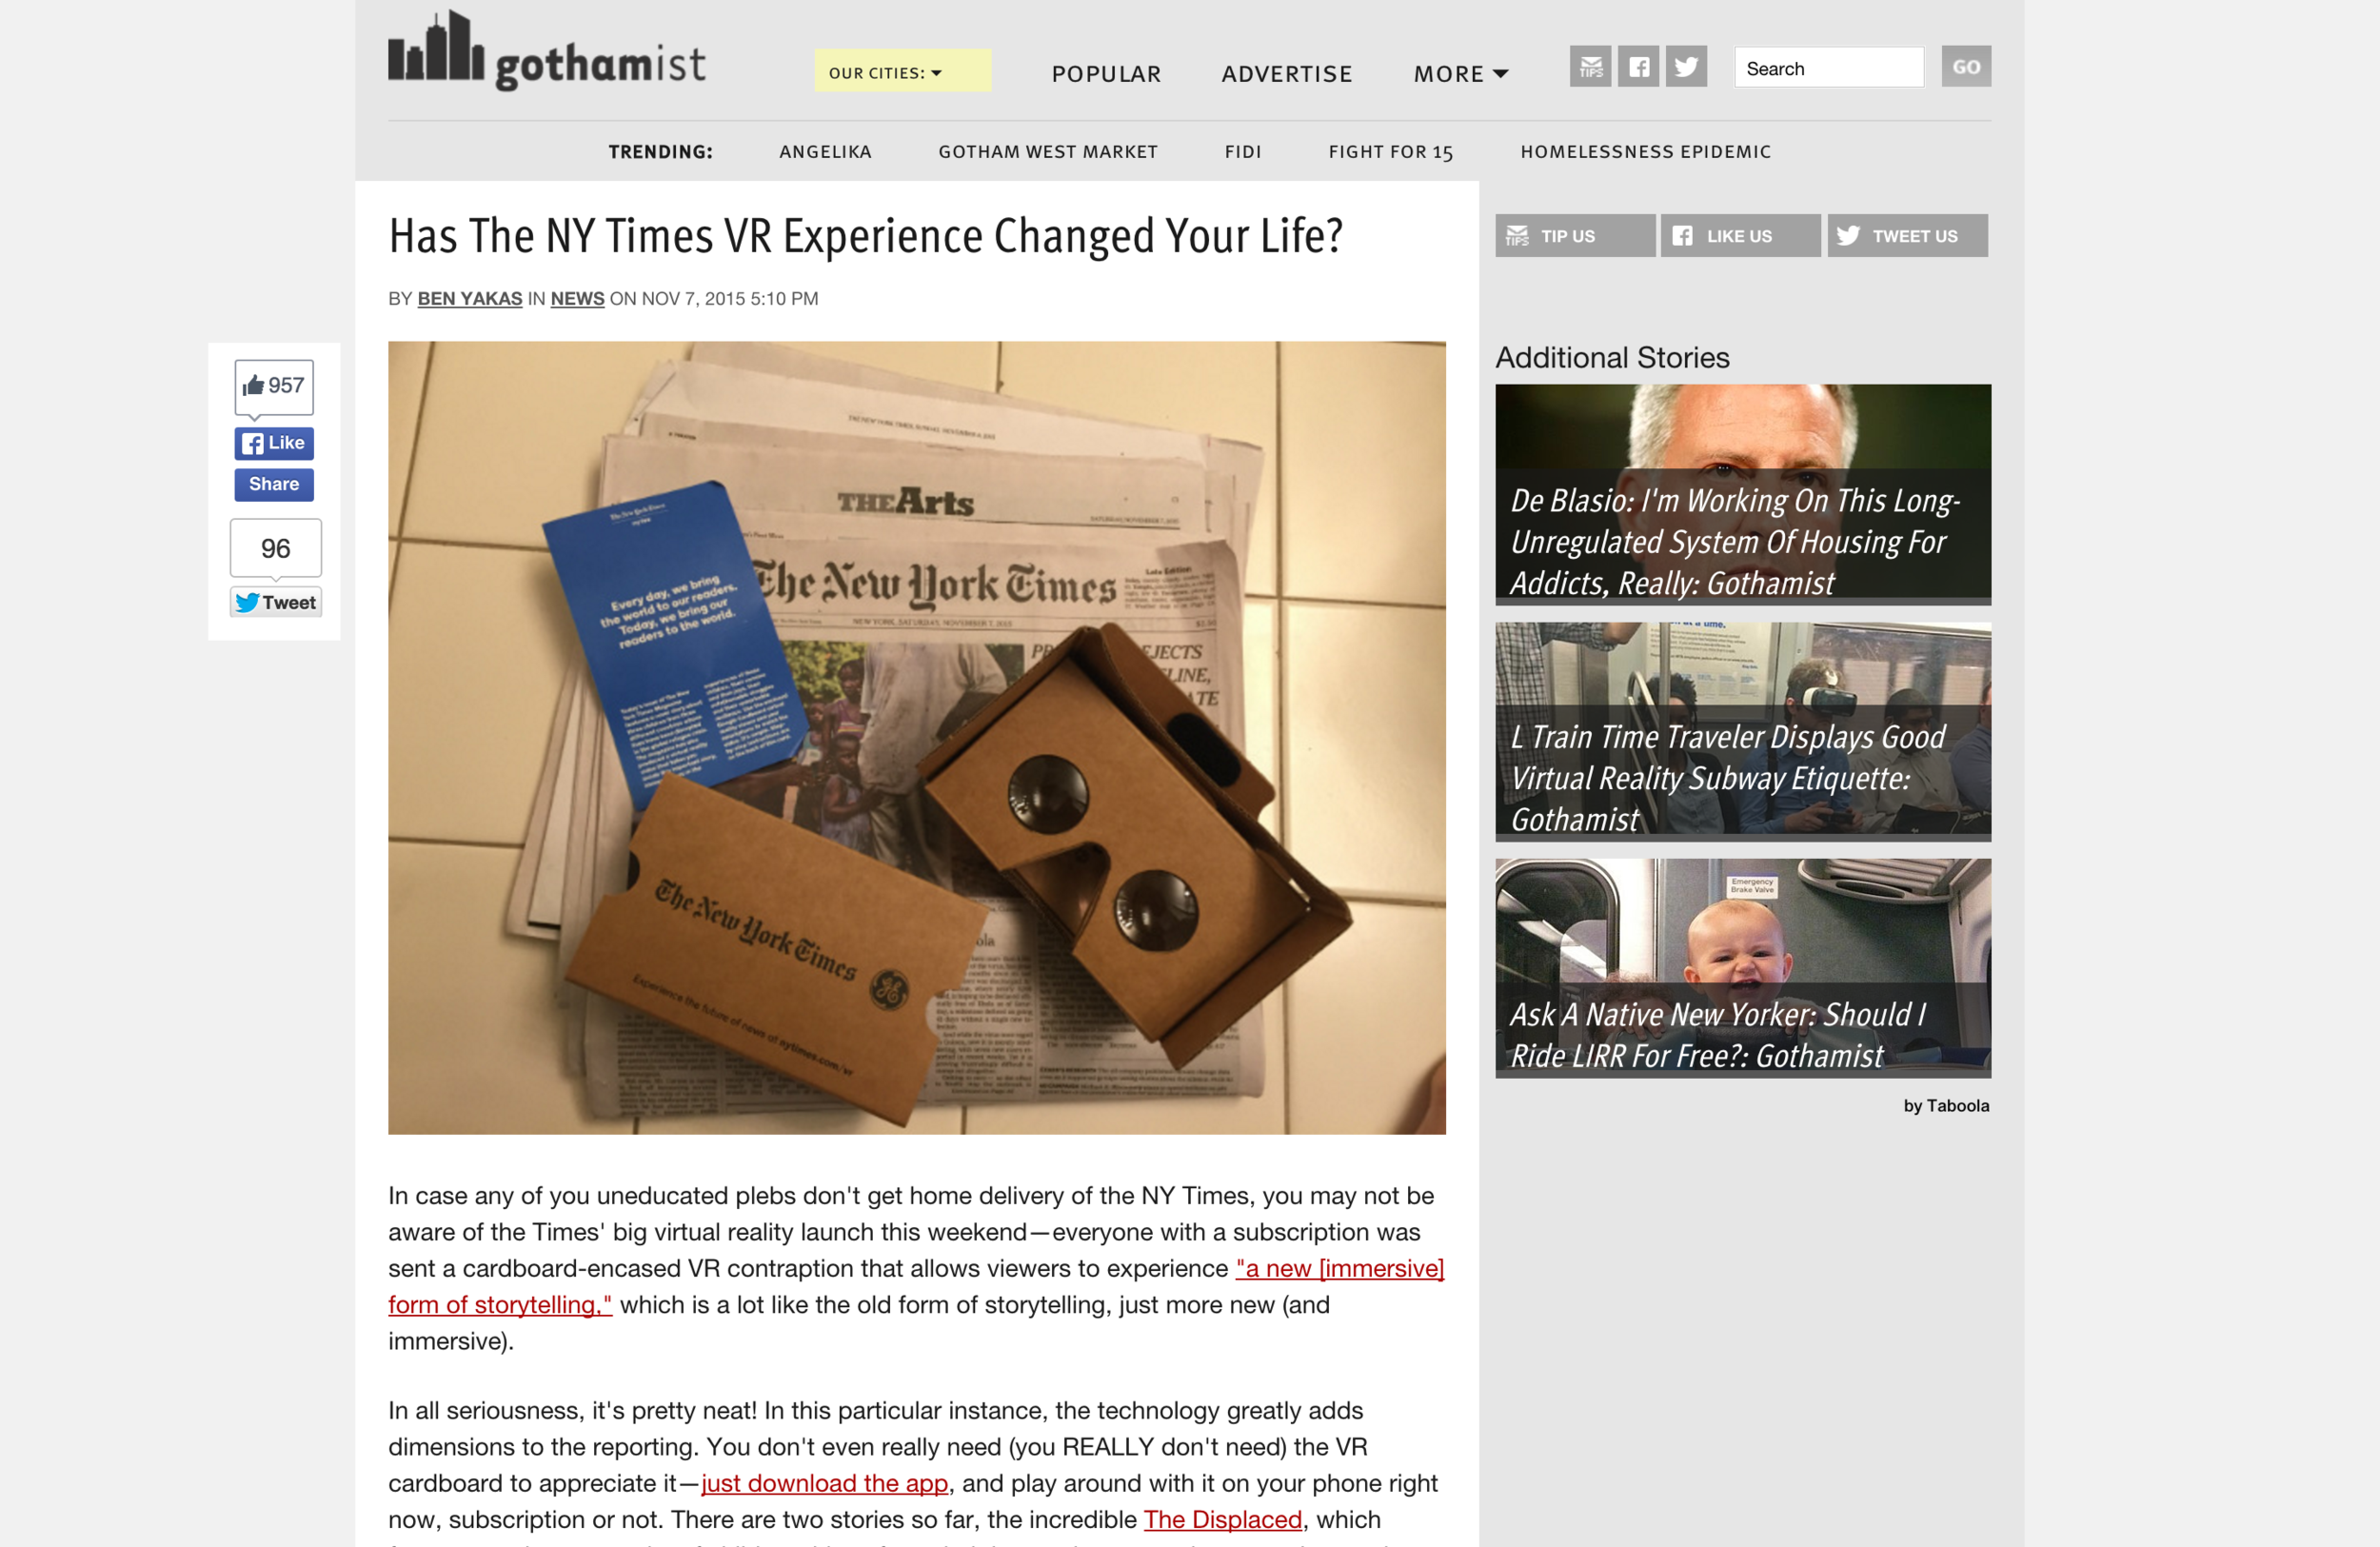 screencapture-gothamist-com-2015-11-07-has_the_ny_times_vr_experience_chan-php-1447202475221.png